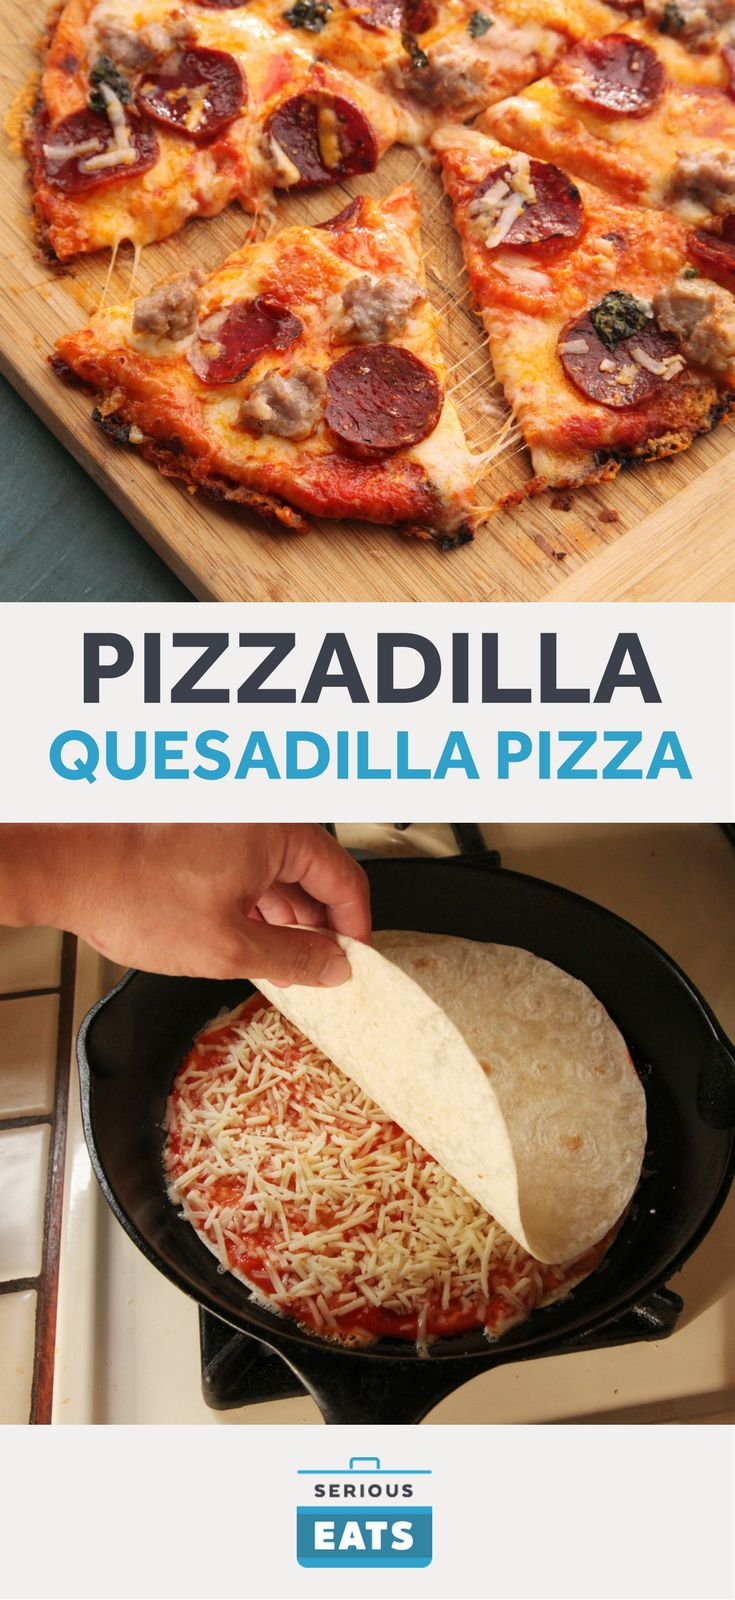 A crispy cheese-stuffed quesadilla forms the base for a quick cast iron-baked pizza.